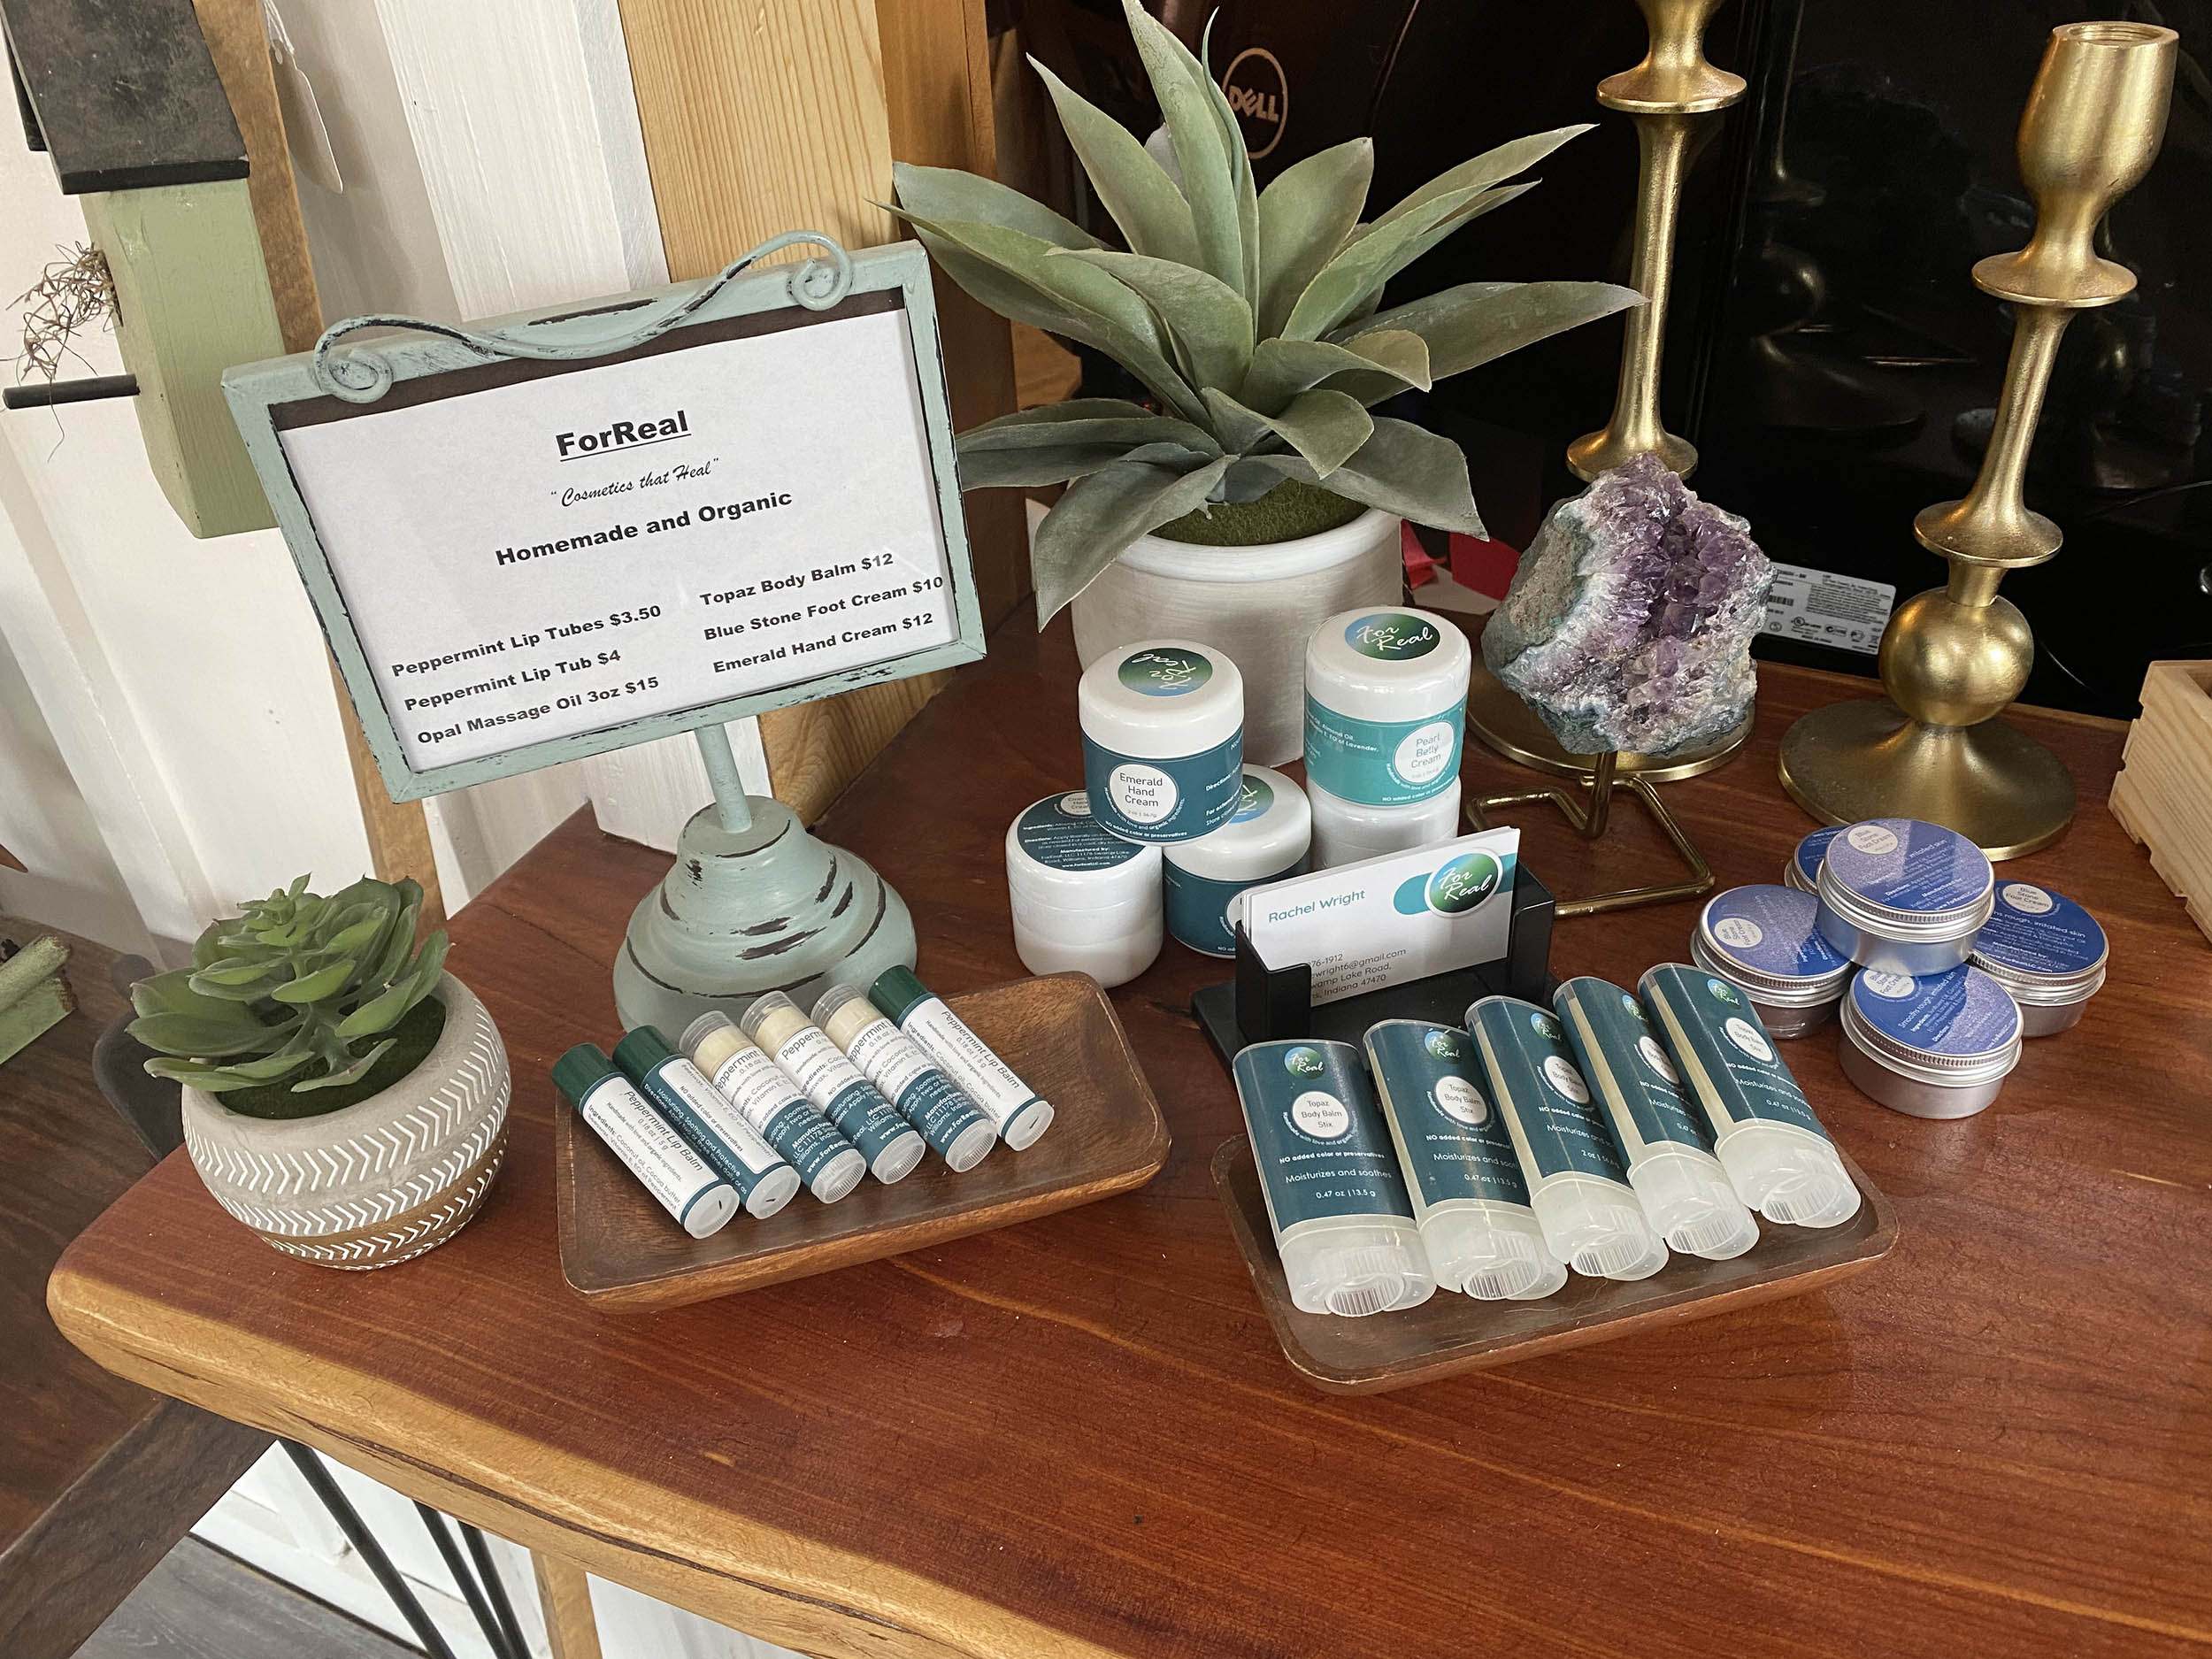 for real products - good earth